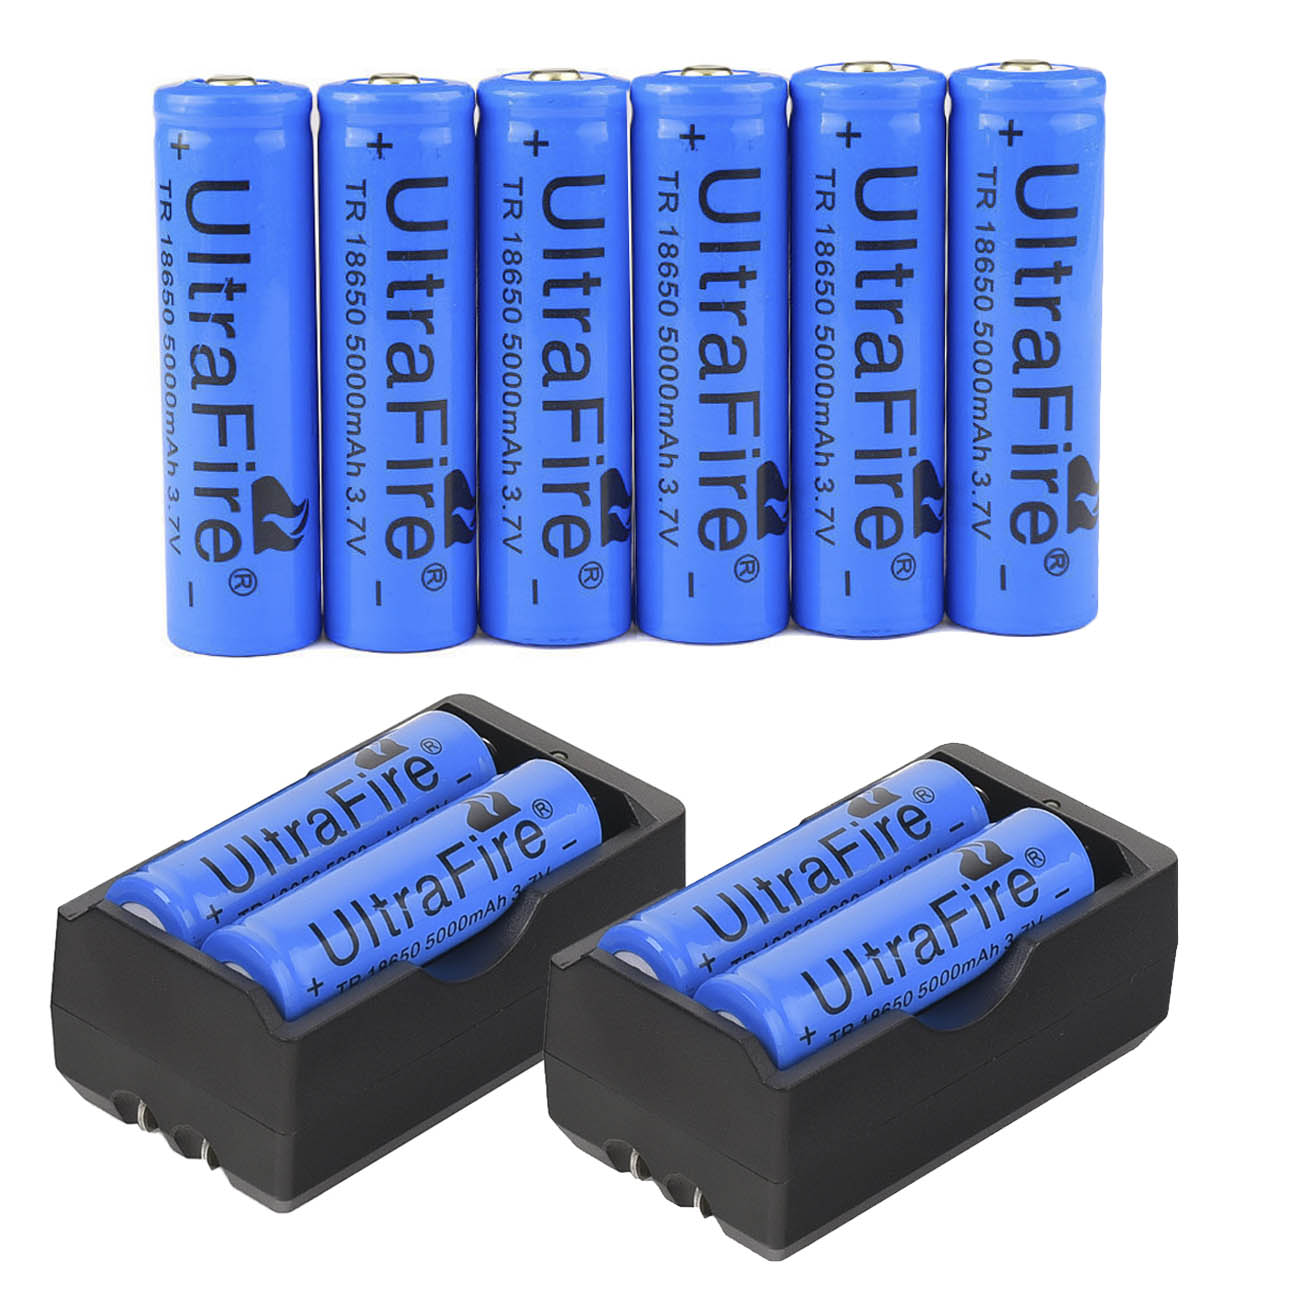 10pc 18650 3.7V Li-ion 5000mAh Energy Battery +2pc Smart Charger US